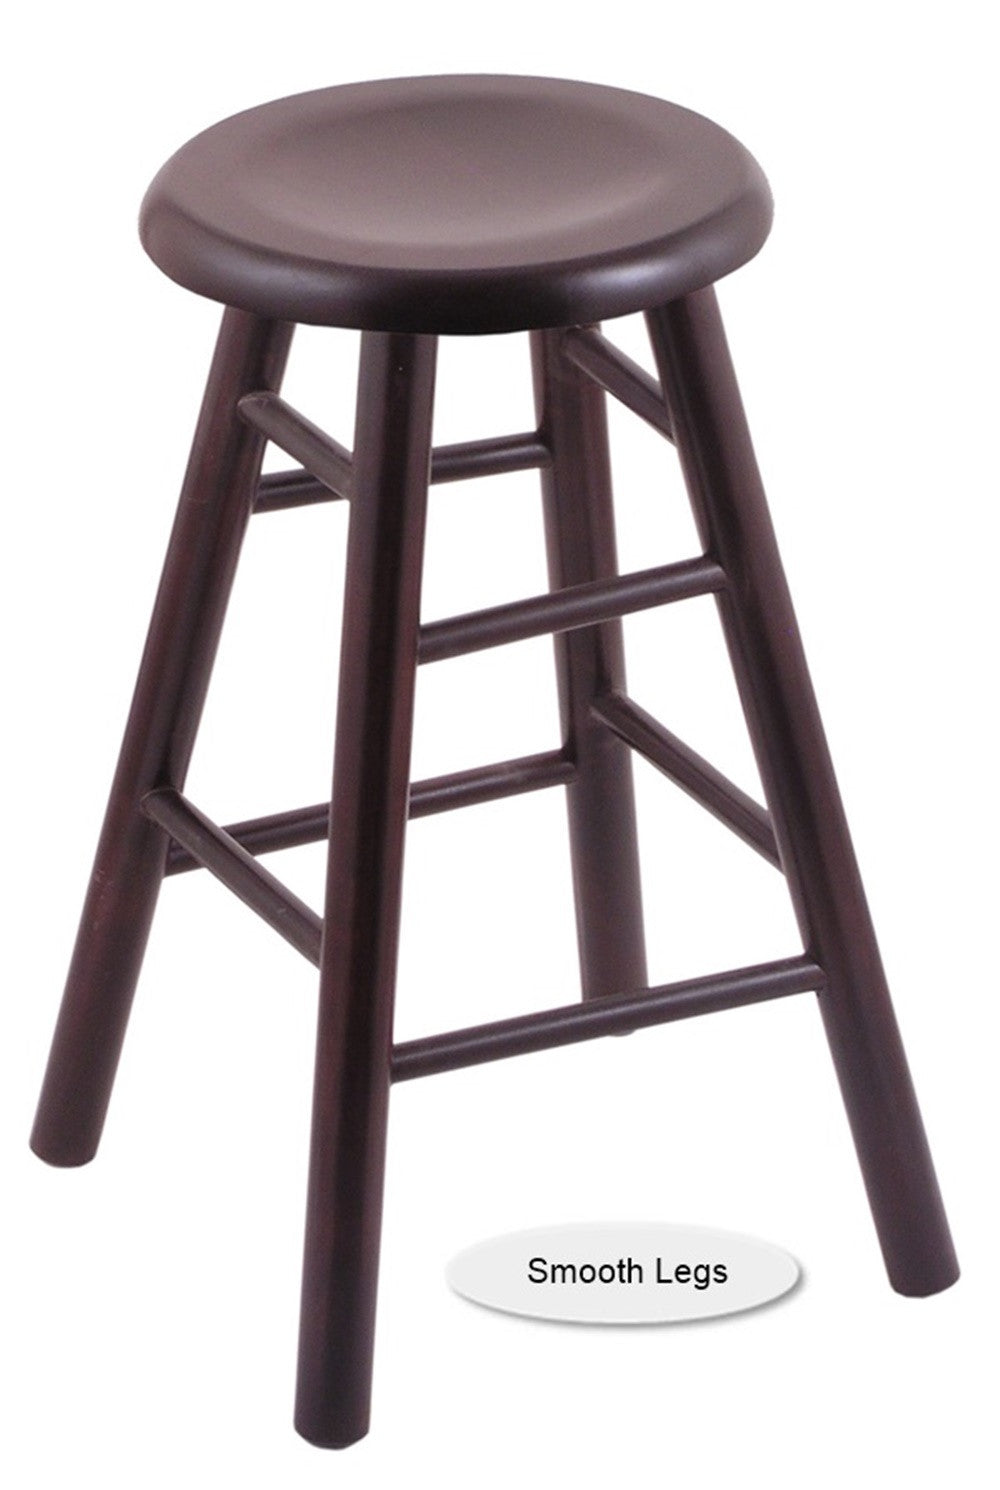 Big and Tall XL Wood Saddle Dish Swivel Bar Stool - Smooth Legs